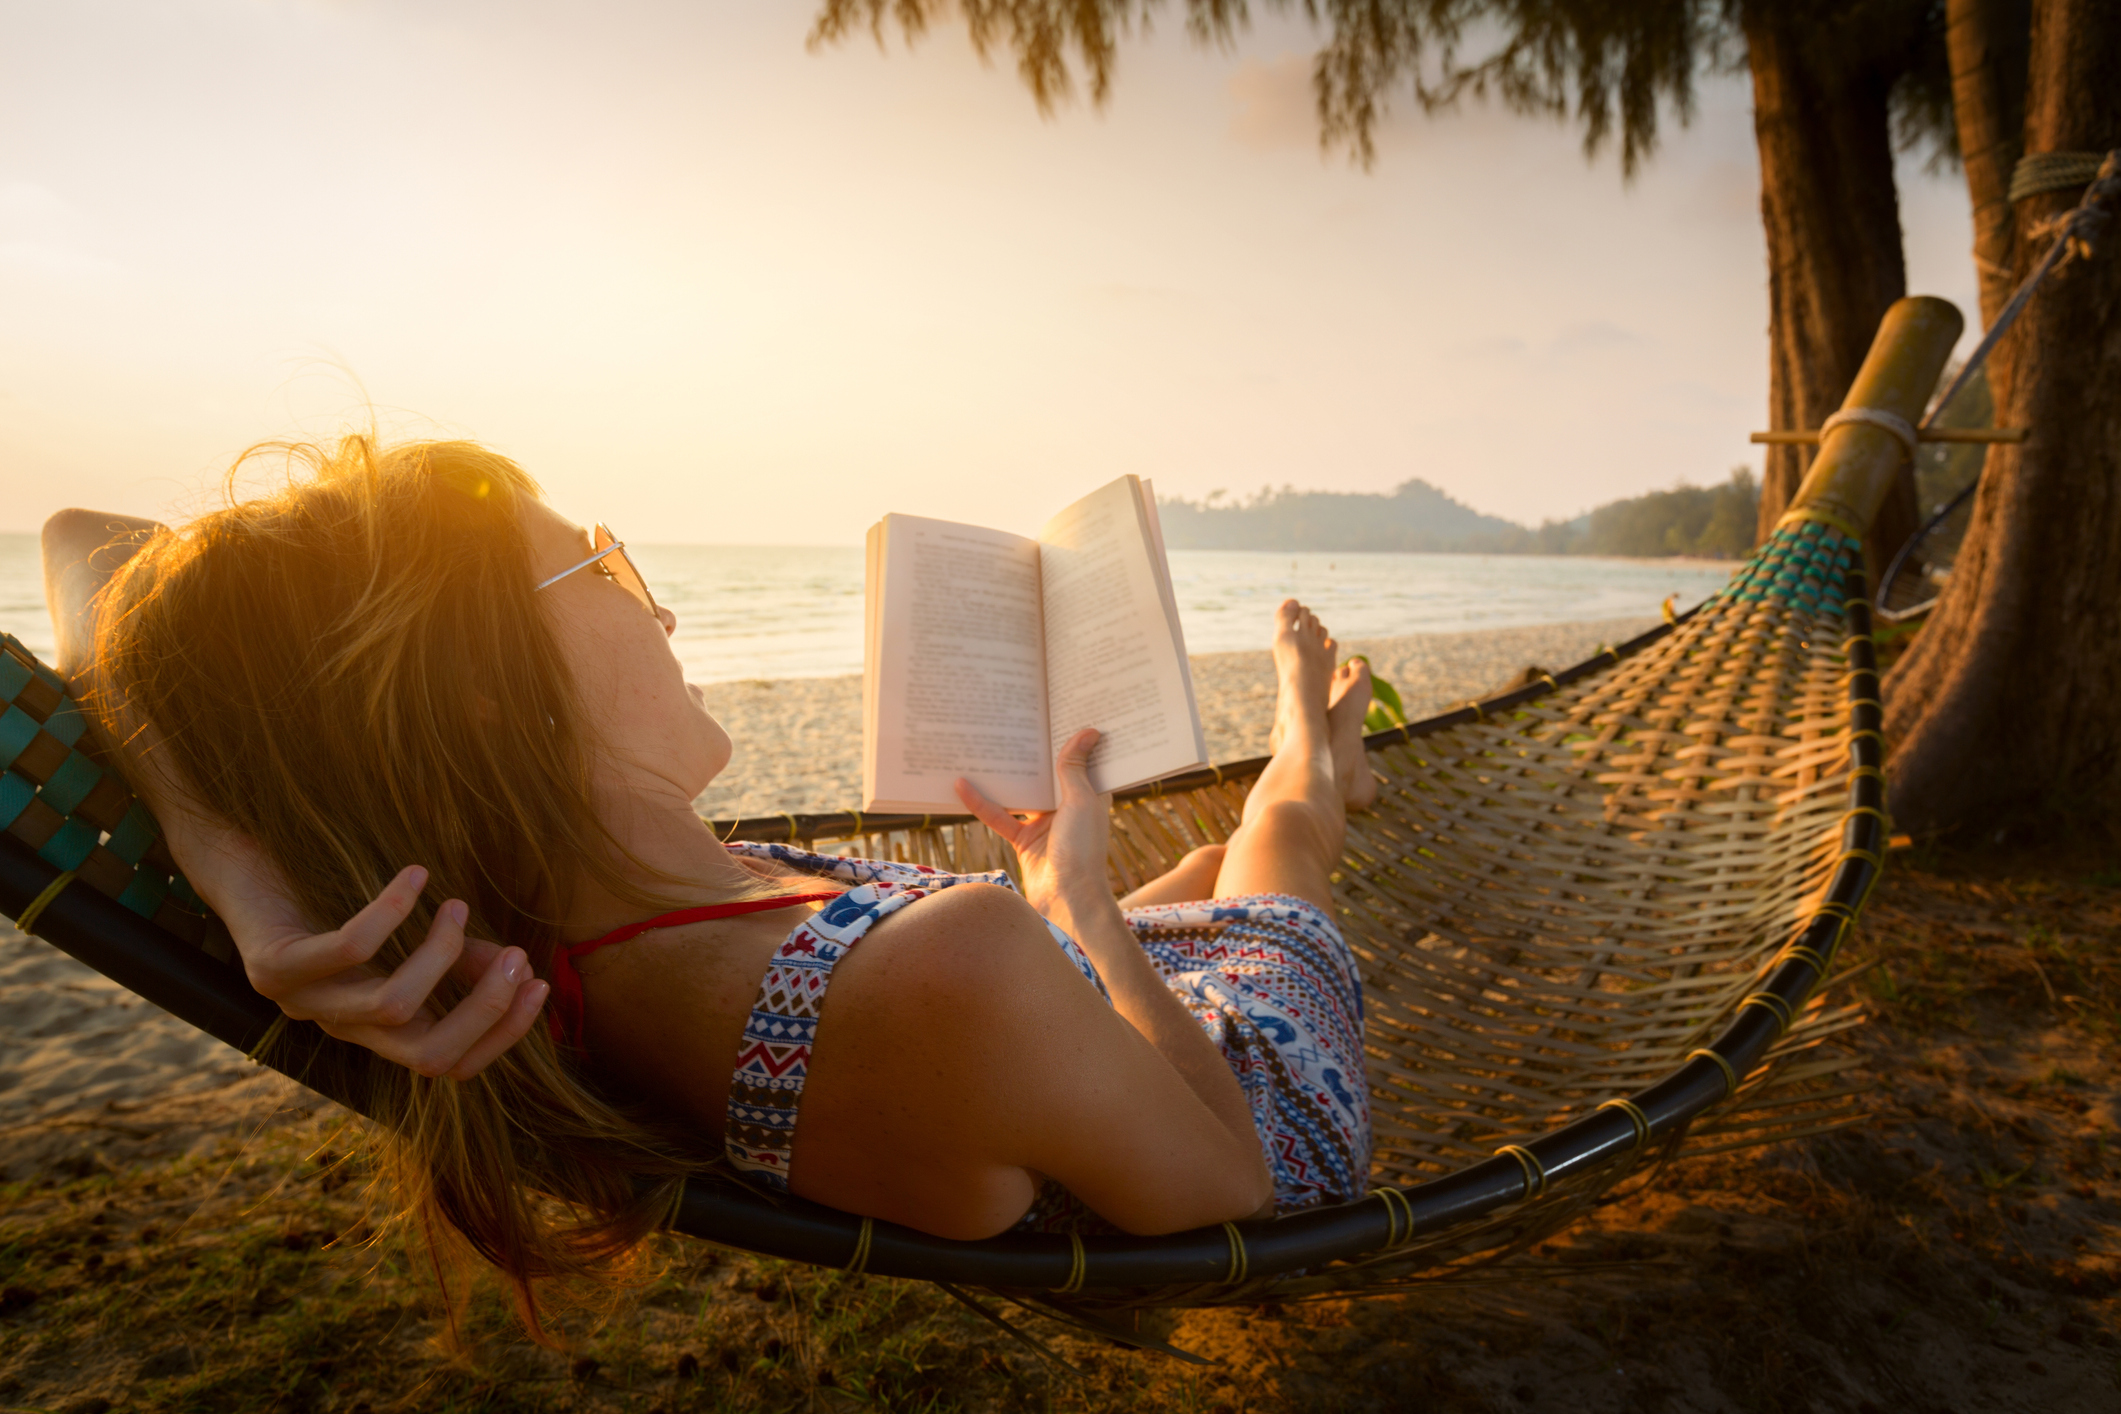 lady reading a book in hammock on a beach at sunset